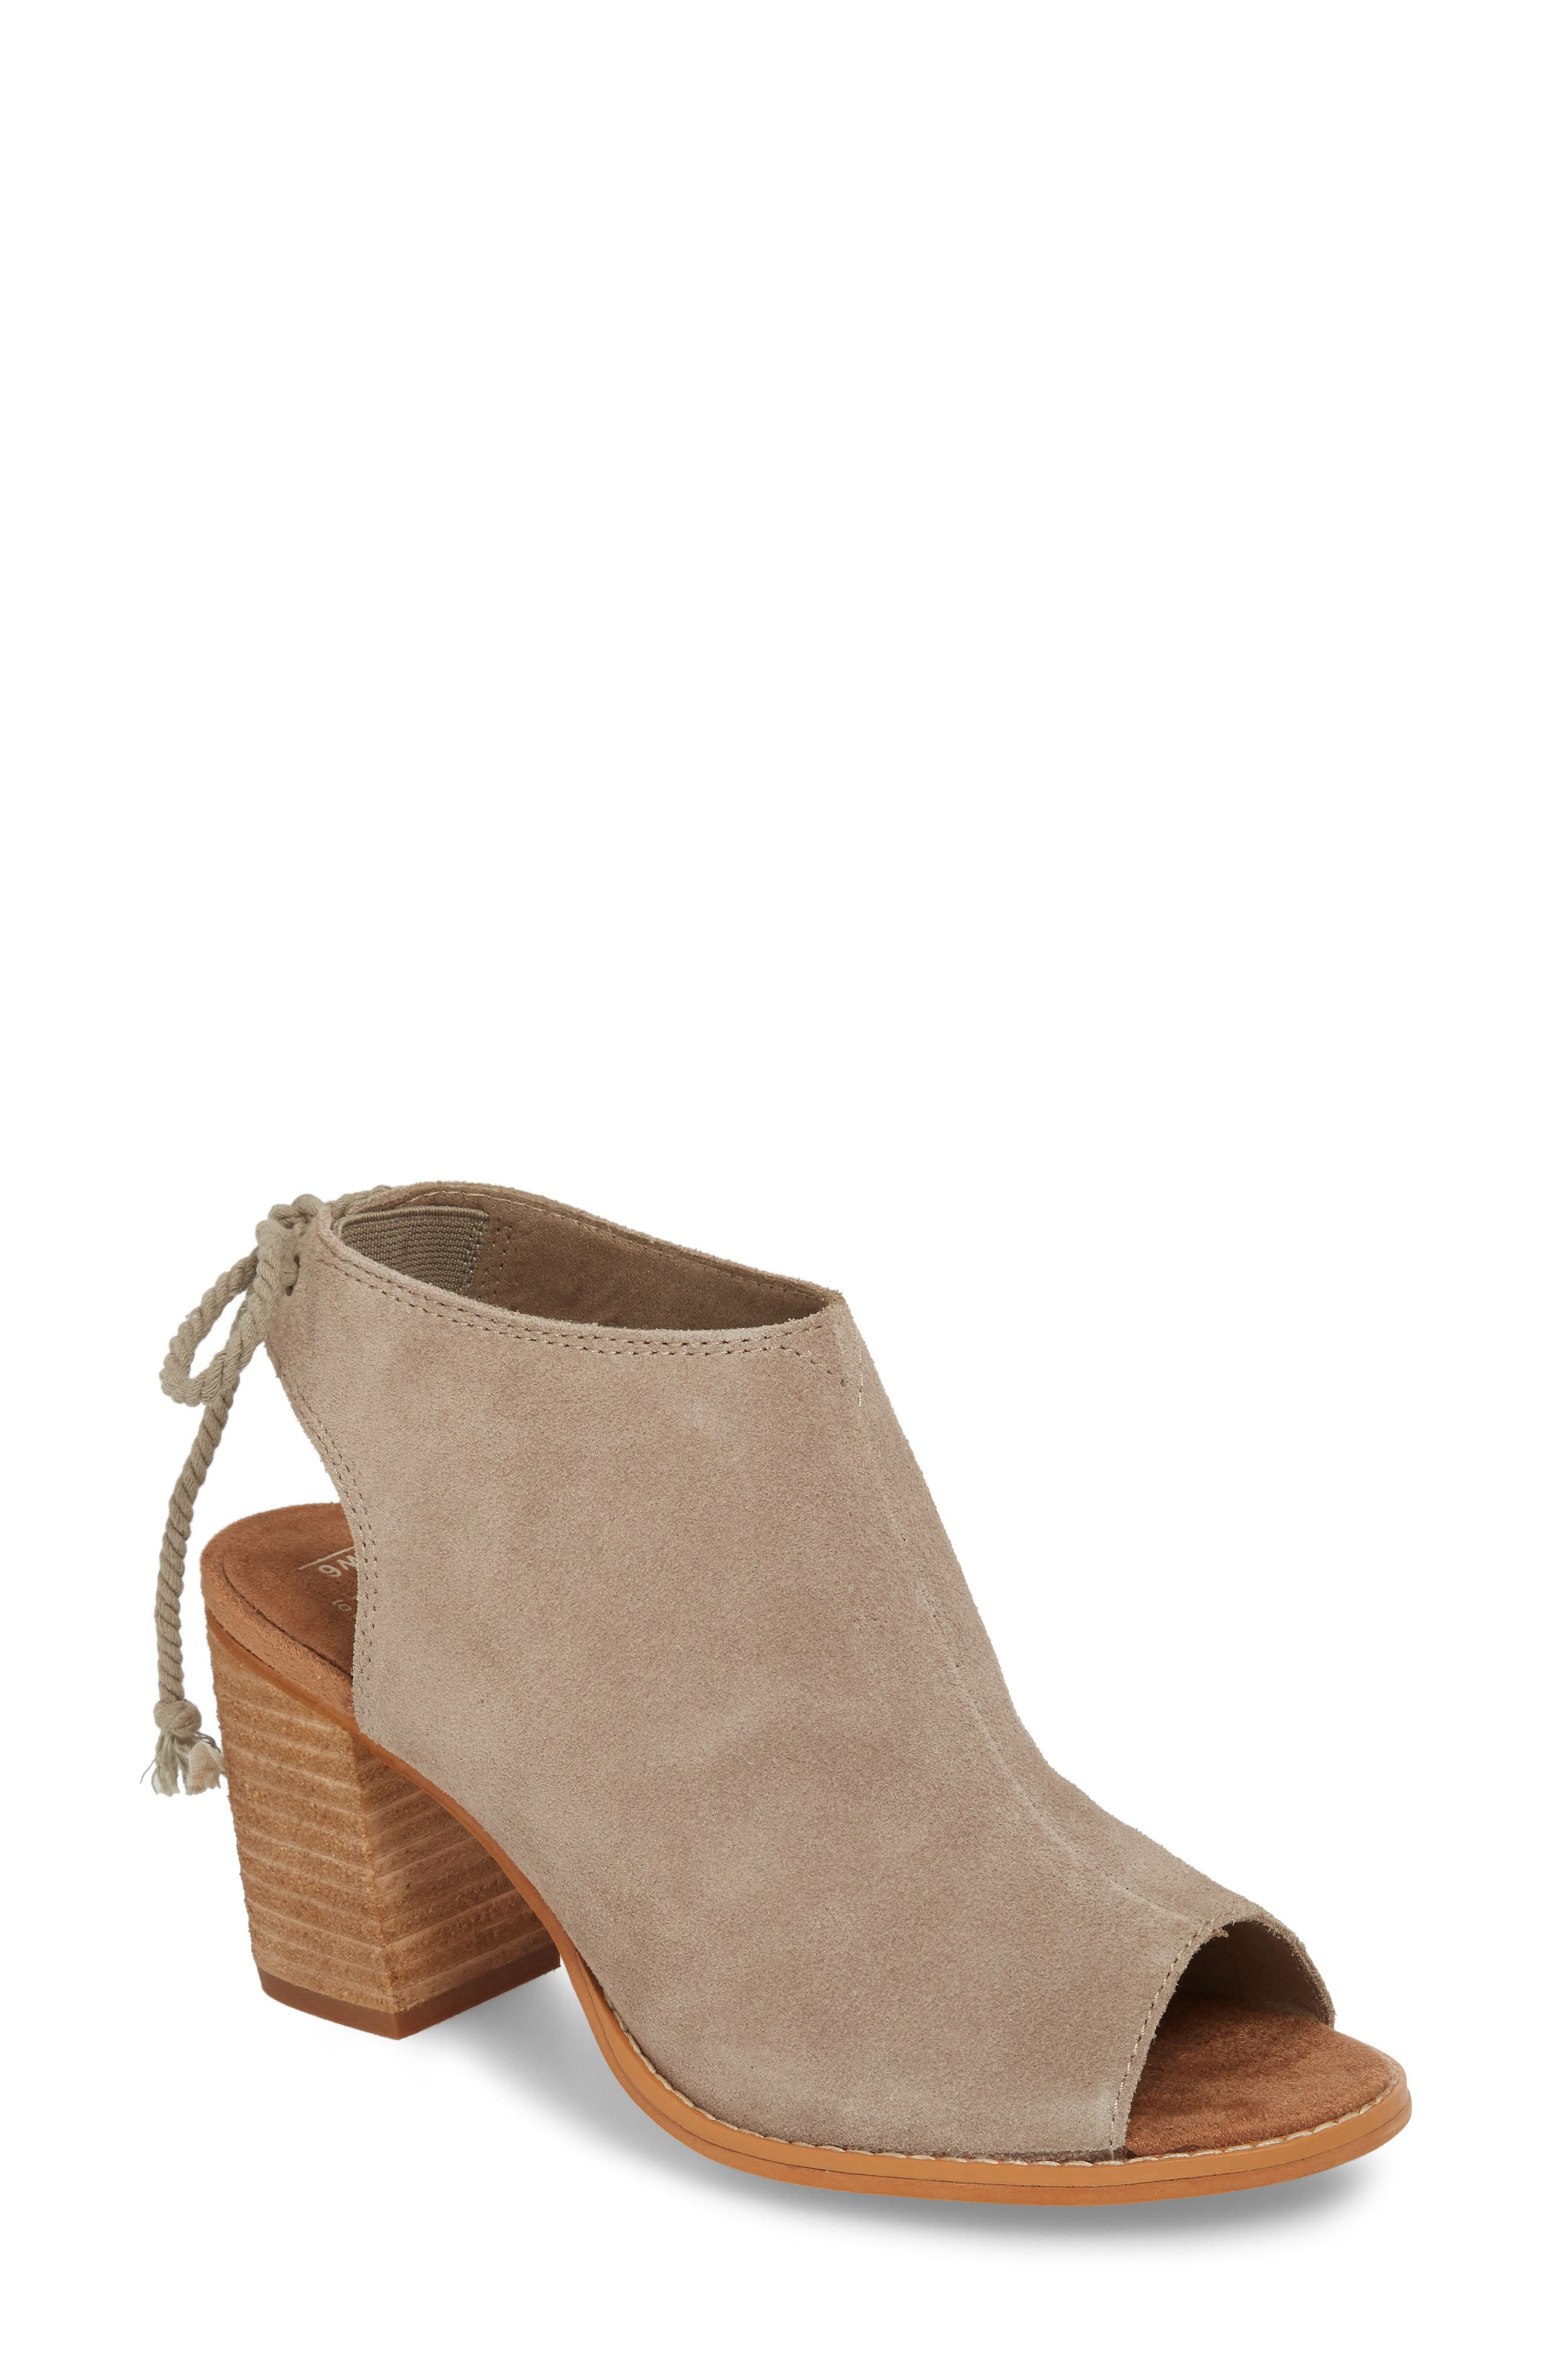 Elba Peep-Toe Bootie,                             Main thumbnail 1, color,                             DESERT TAUPE SUEDE